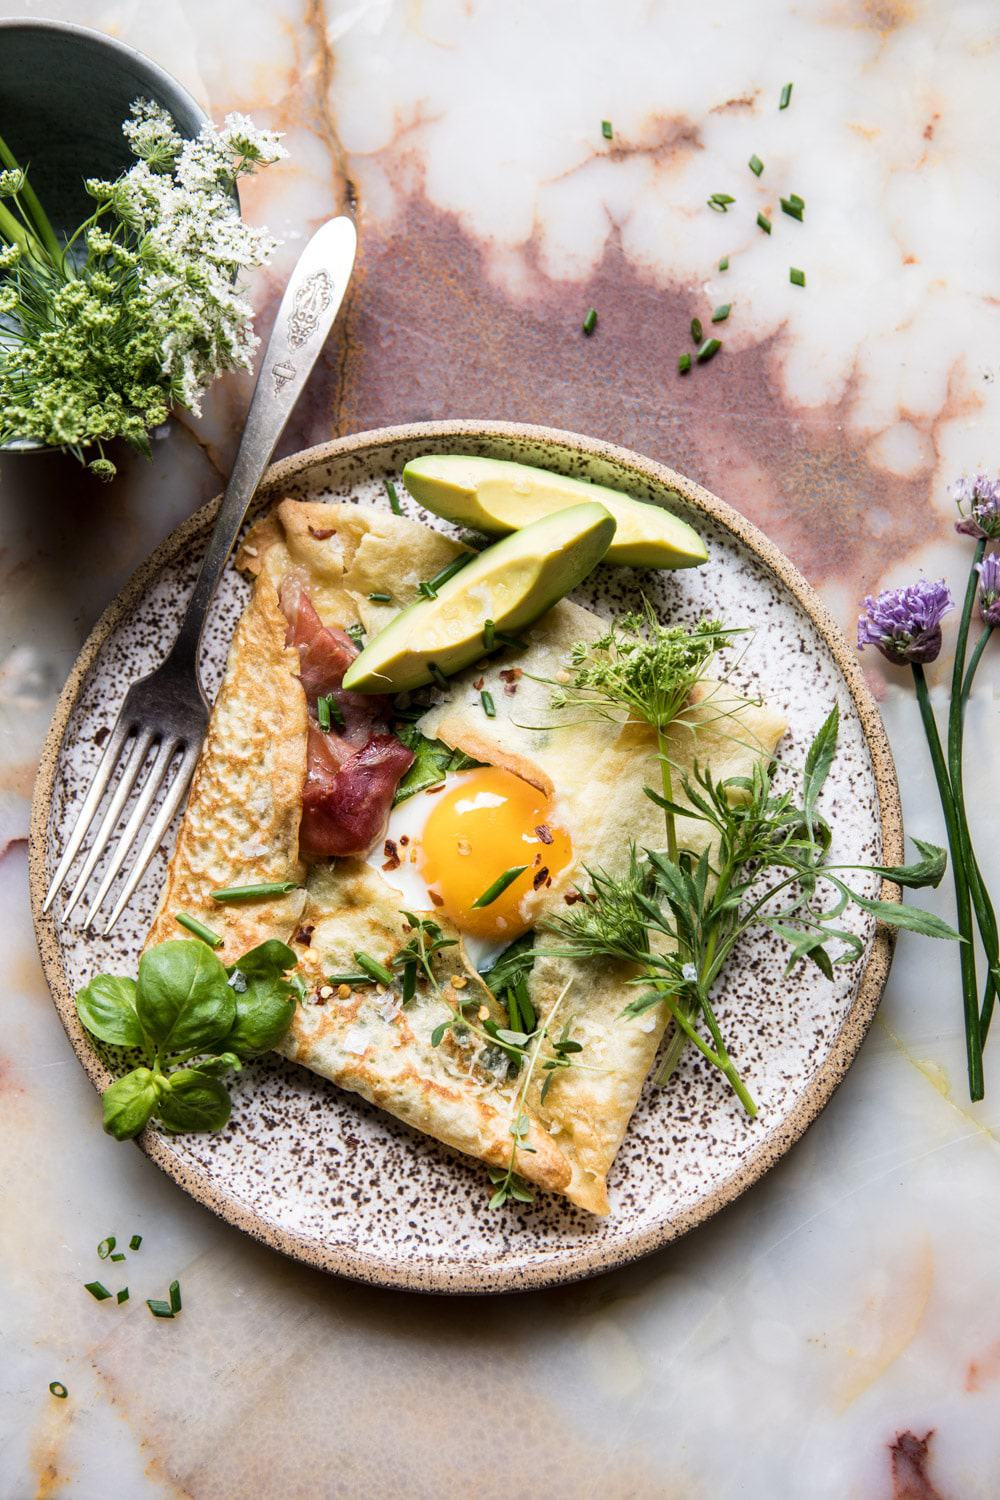 Baked Egg Crepes with Spring Herbs and Avocado | halfbakedharvest.com #breakfast #brunch #easyrecipe